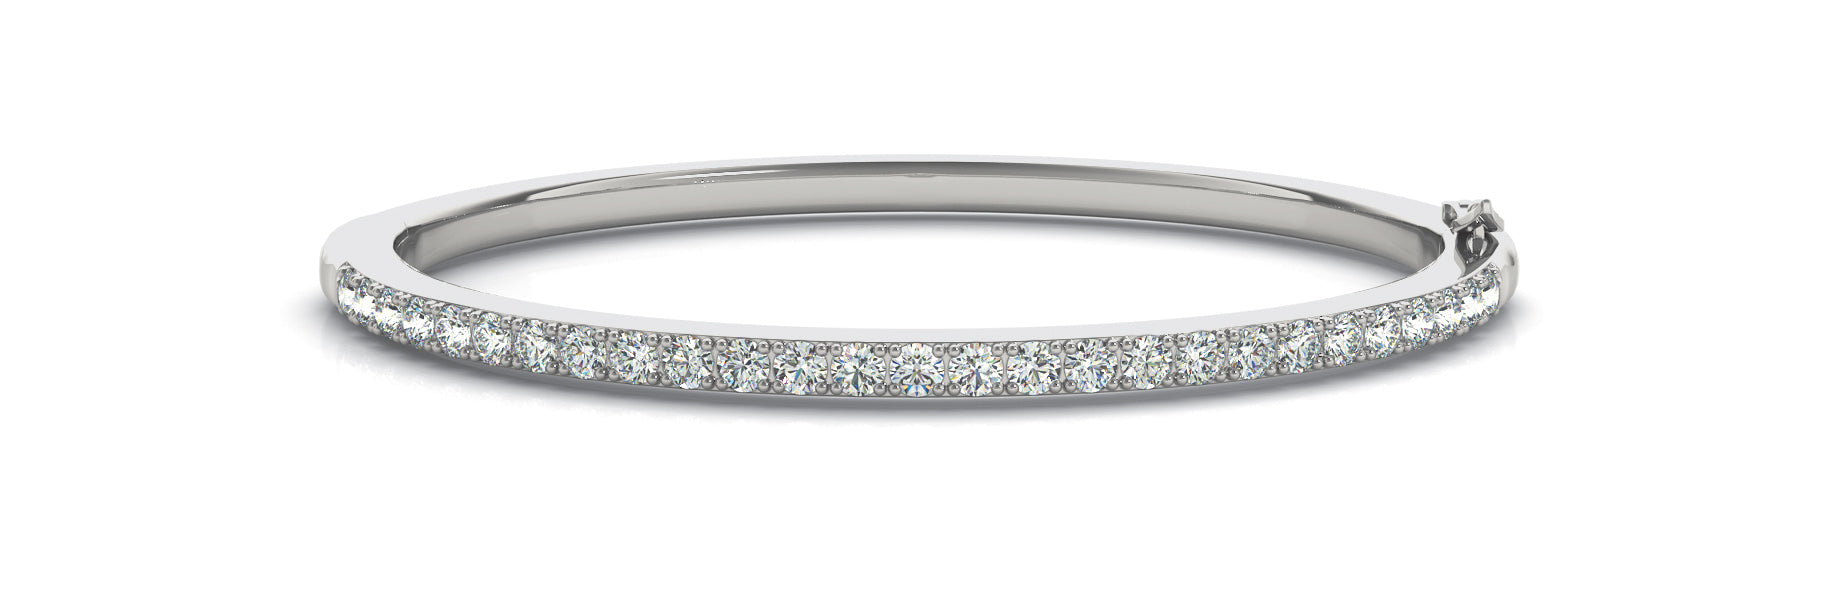 Diamond Bangle 3.24 ct tw - Ladies 14kt White Gold